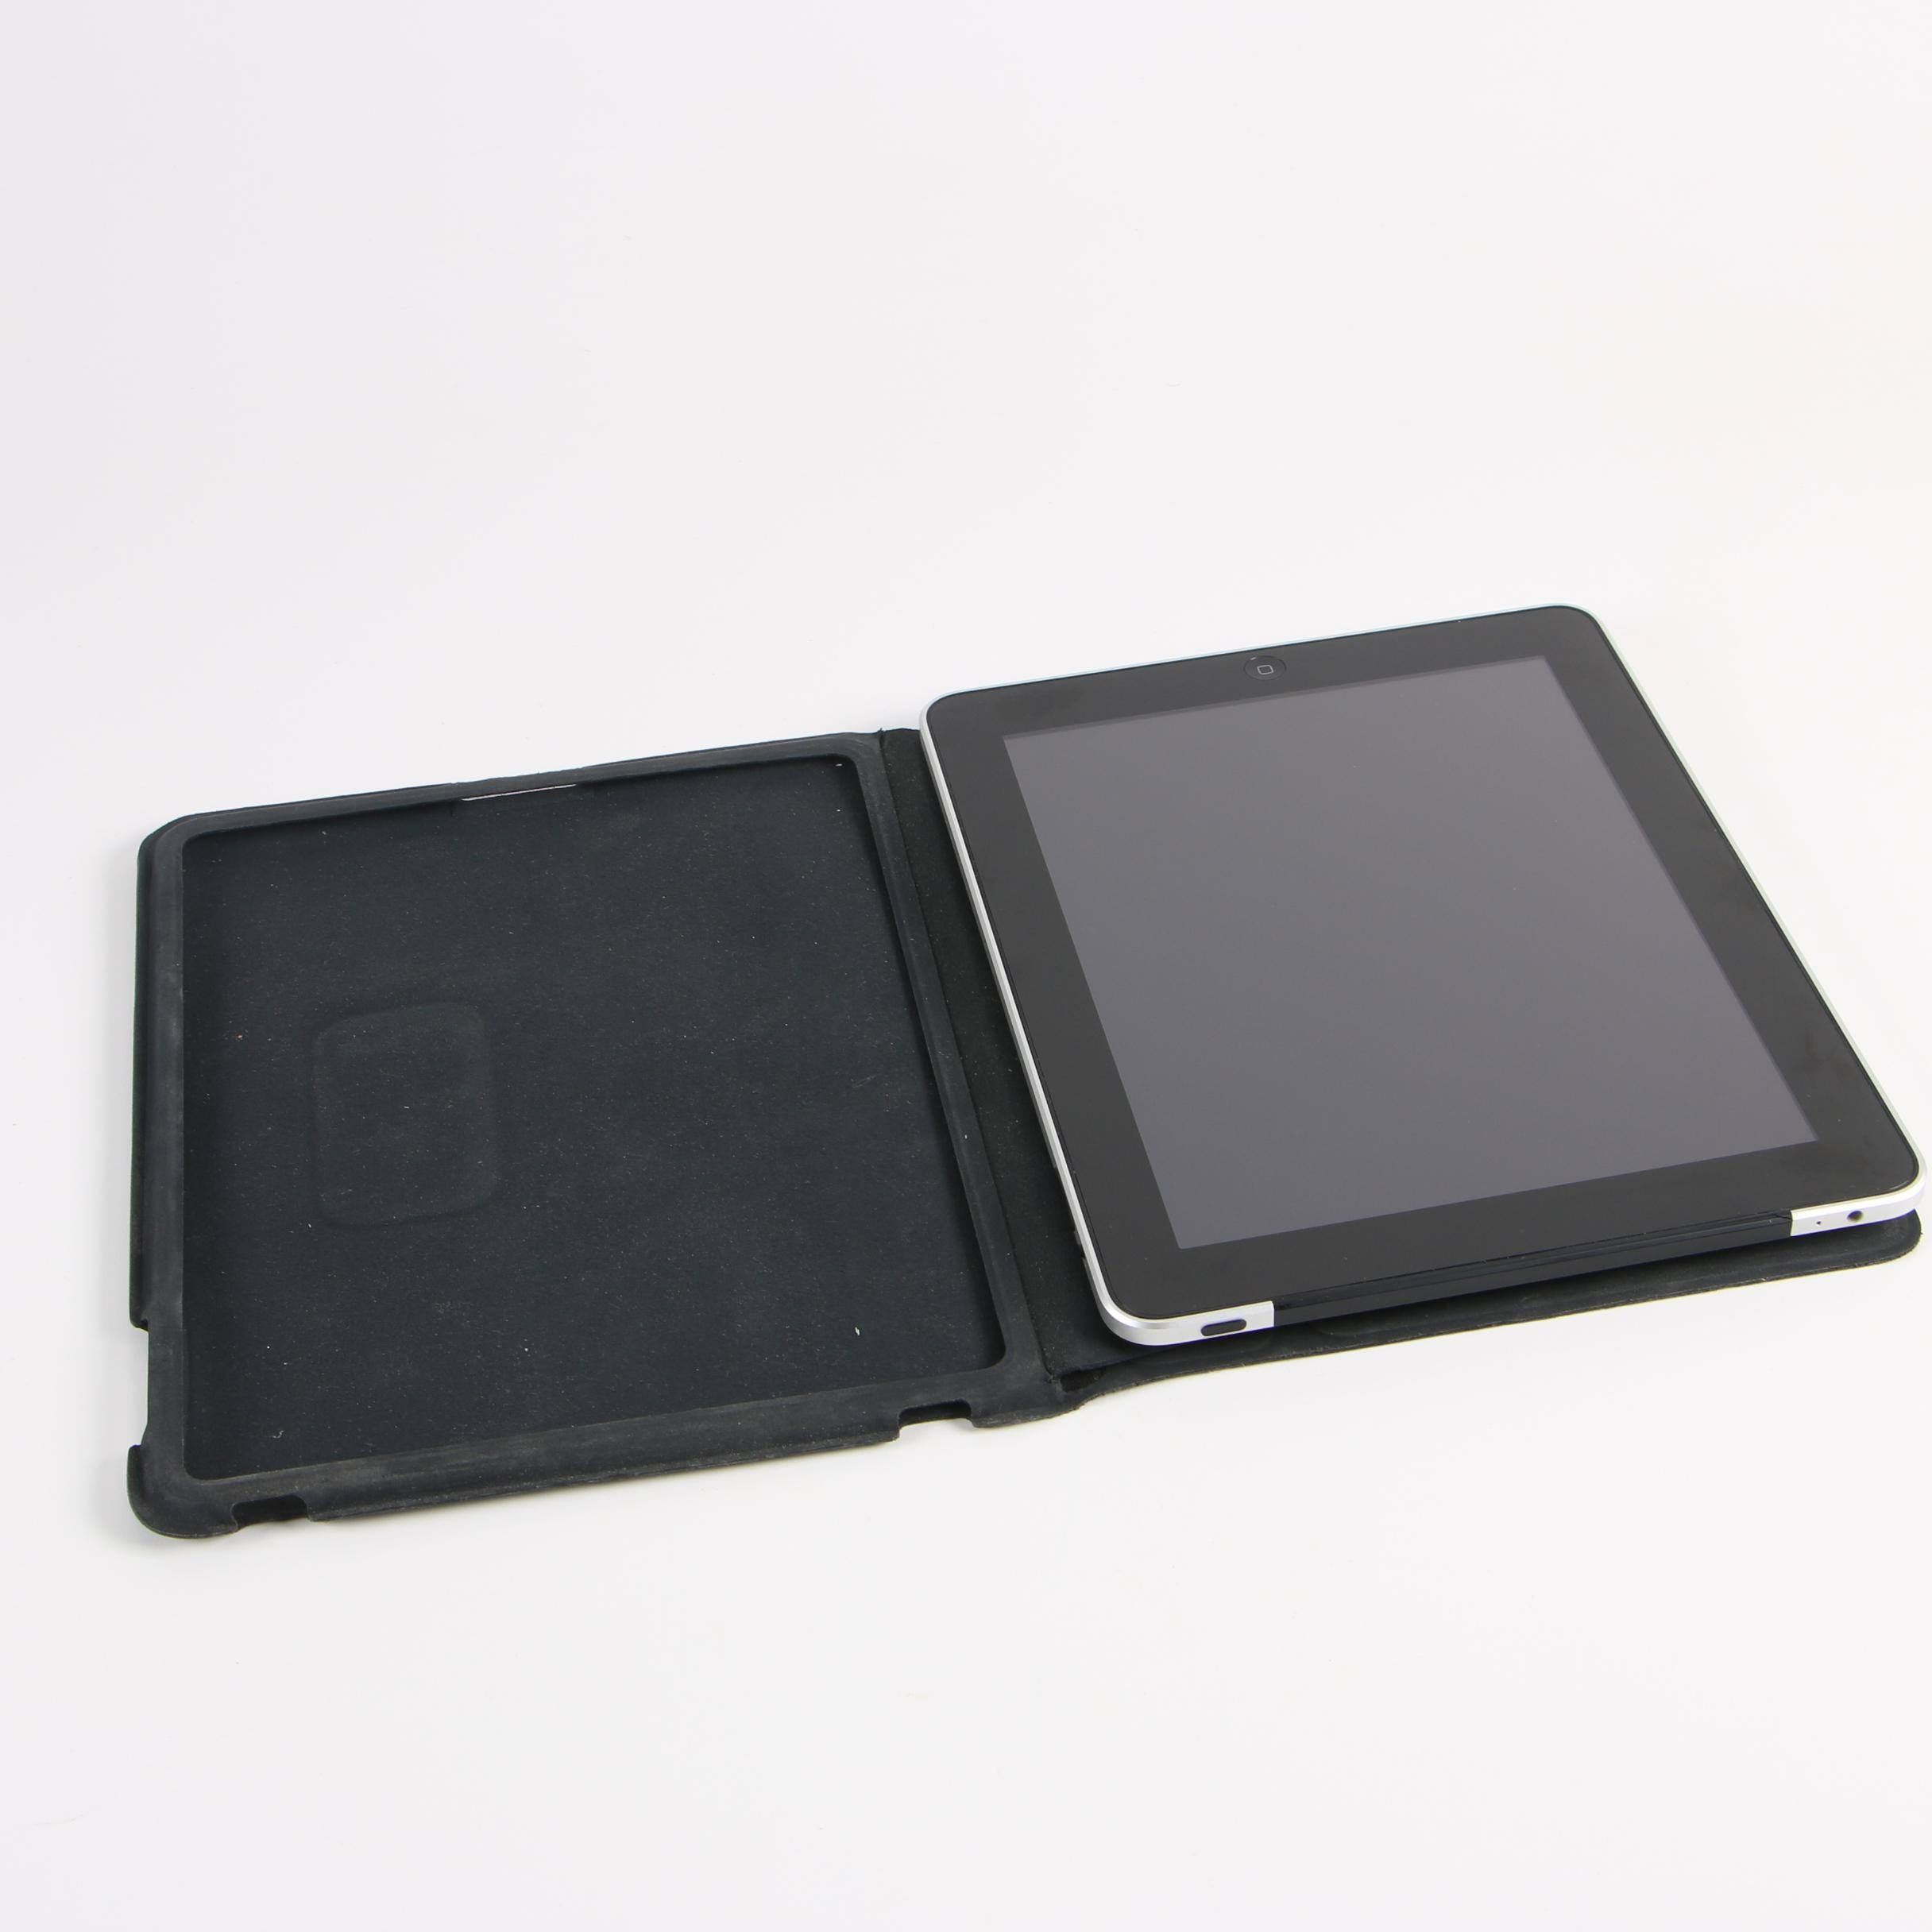 Apple iPad First Generation Model A1337 Tablet with Case